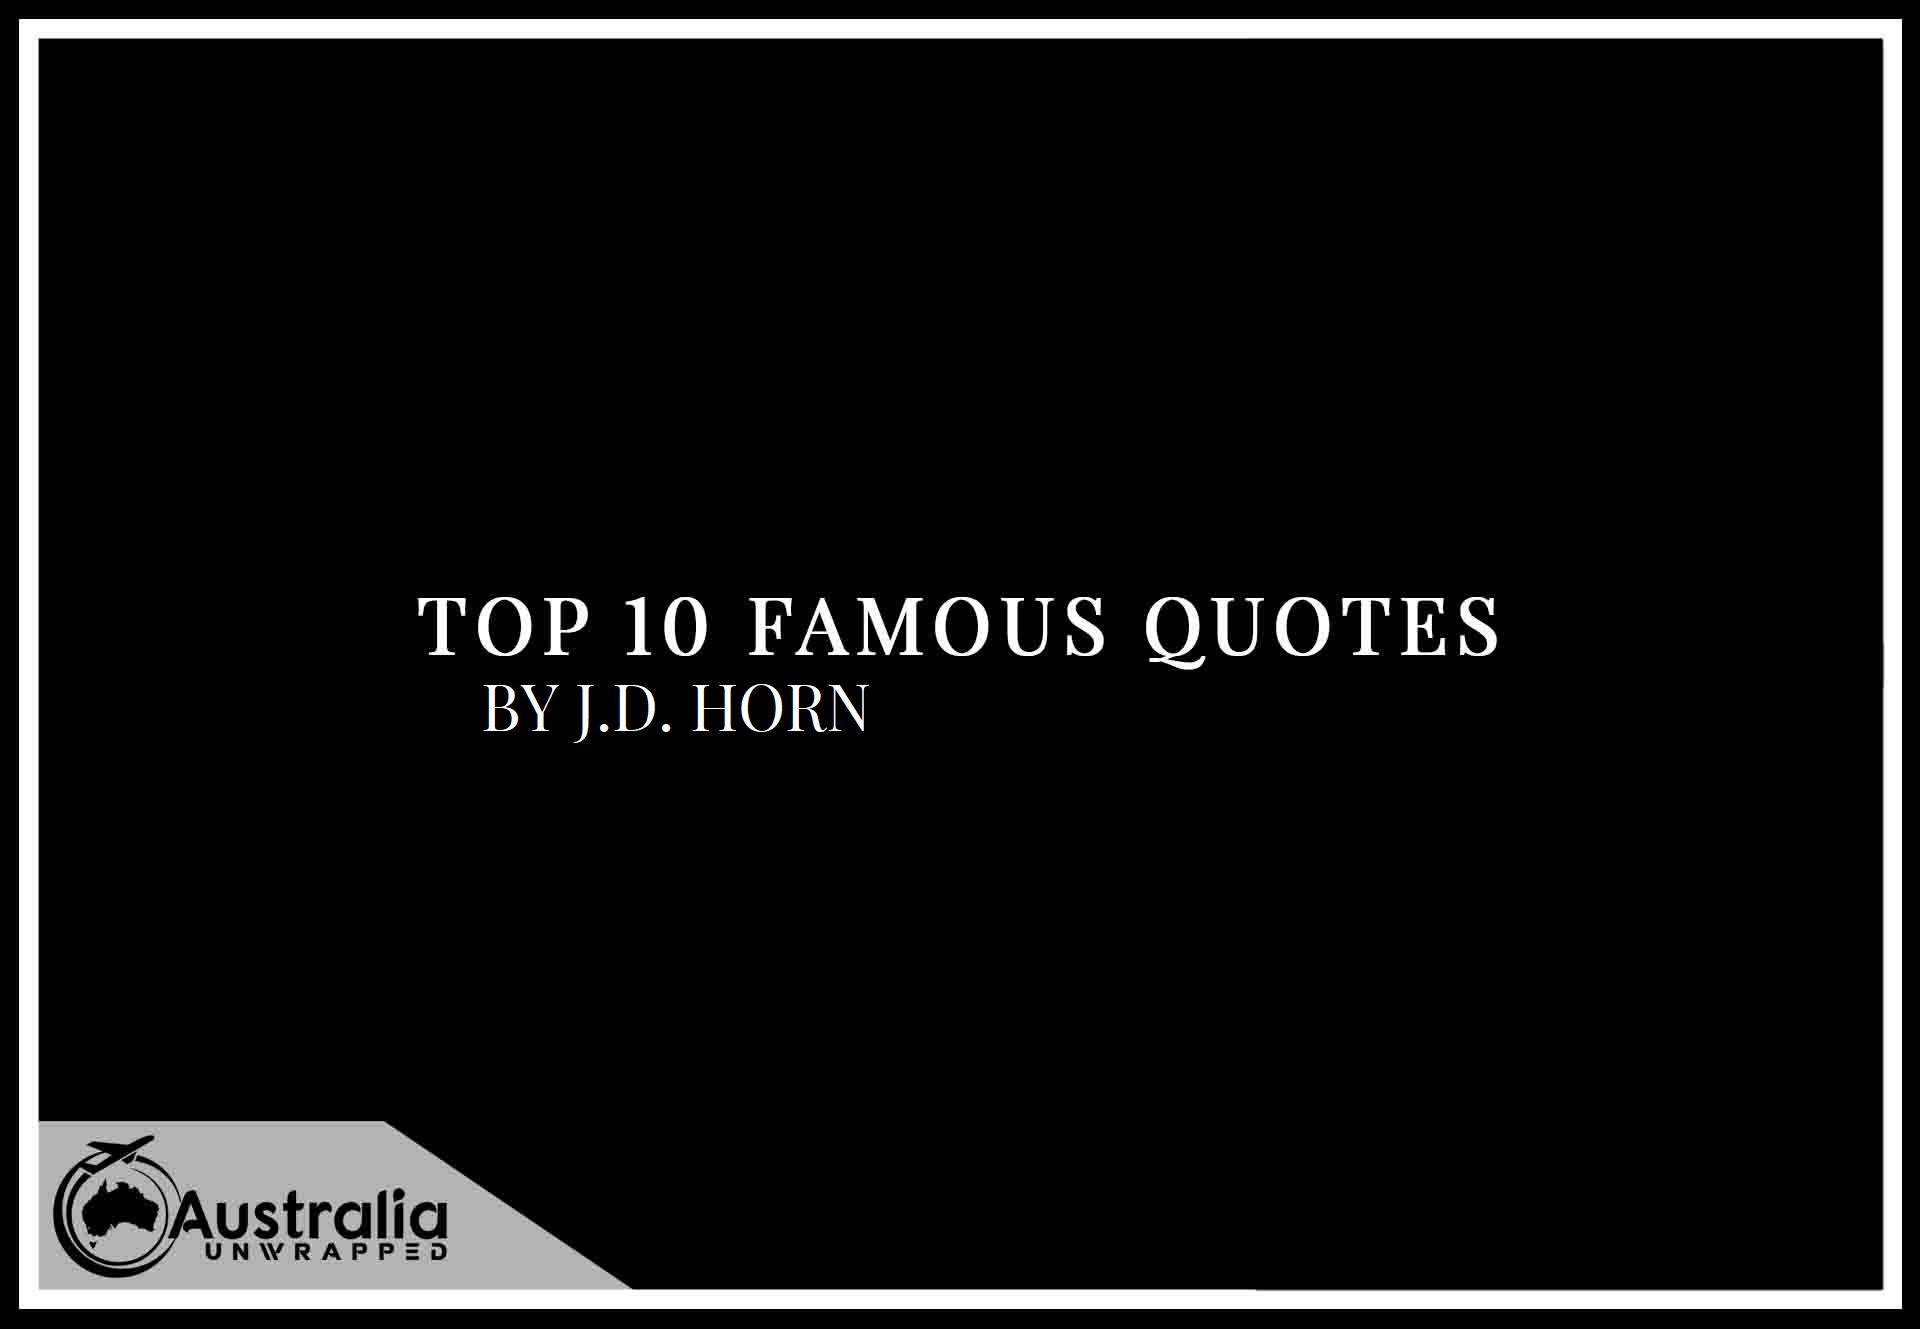 Top 10 Famous Quotes by Author J.D. Horn